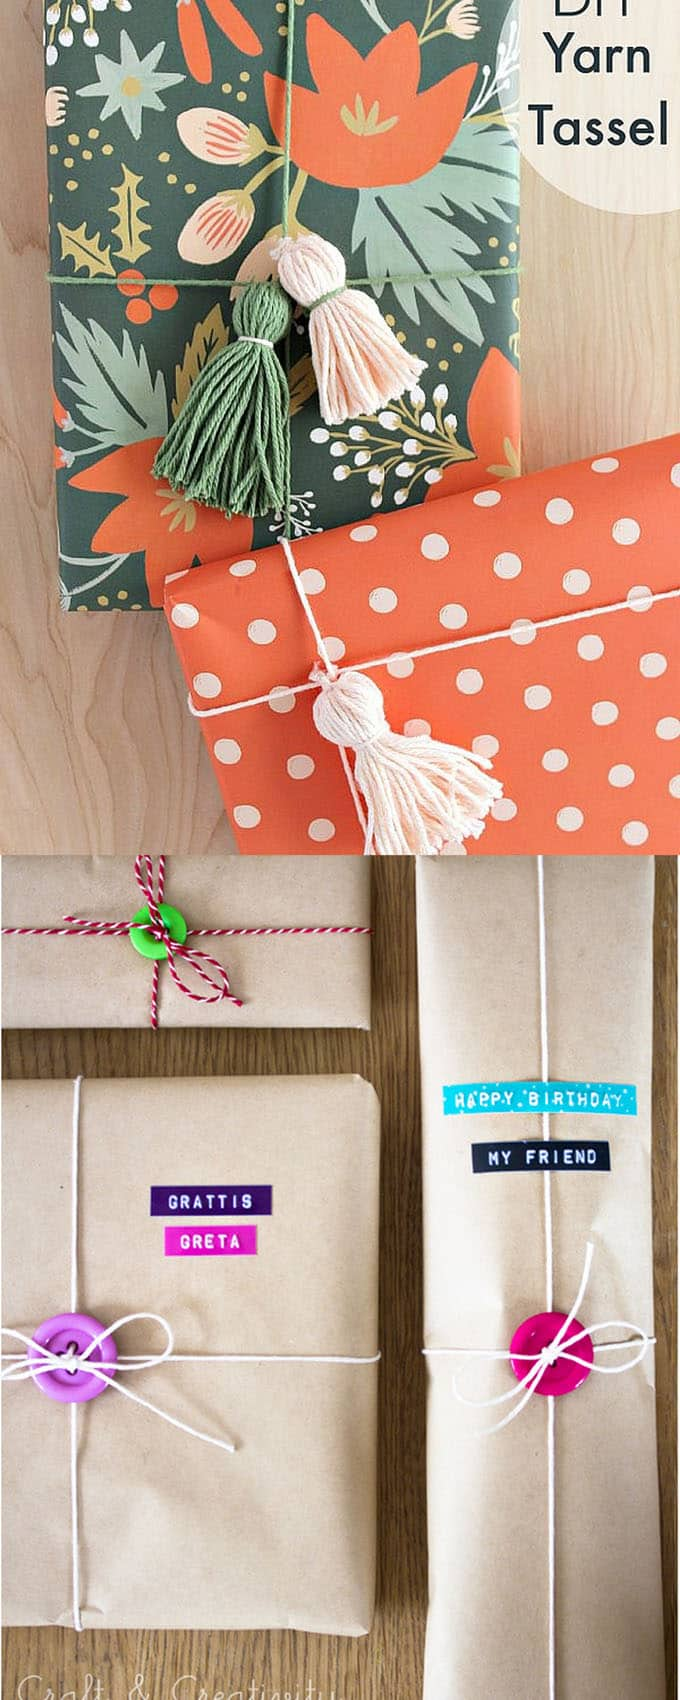 16-gift-wrapping-hacks-apieceofrainbow-9